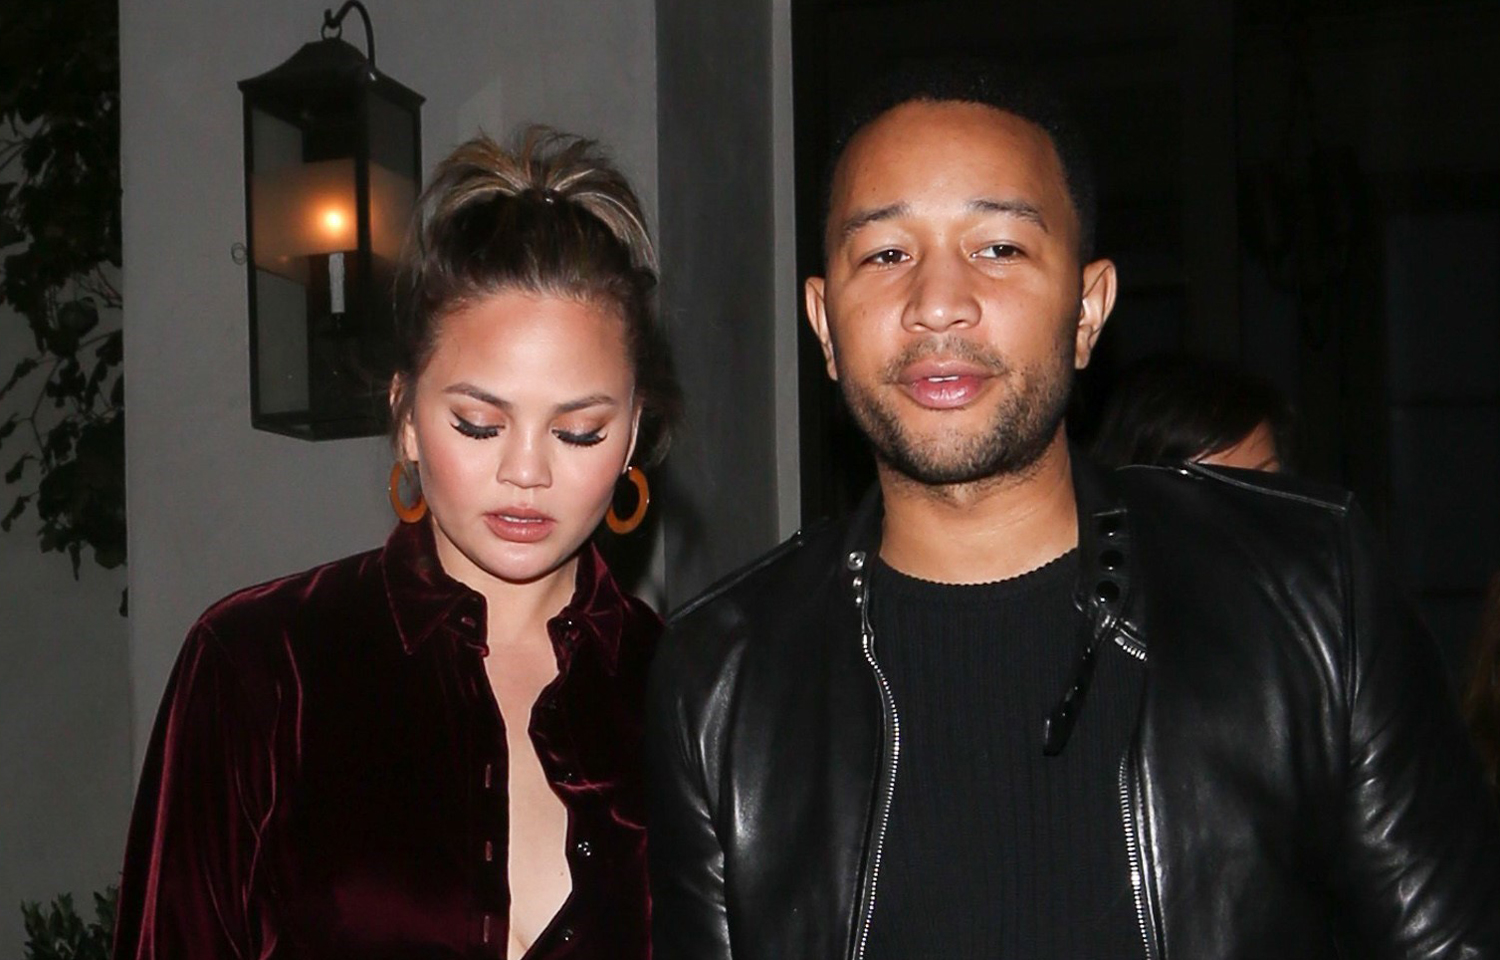 teigen mature singles Chrissy teigen has shared an adorable video of her bathing with daughter luna  mature gay deaths inoticesie deaths  'i don't fear being single.